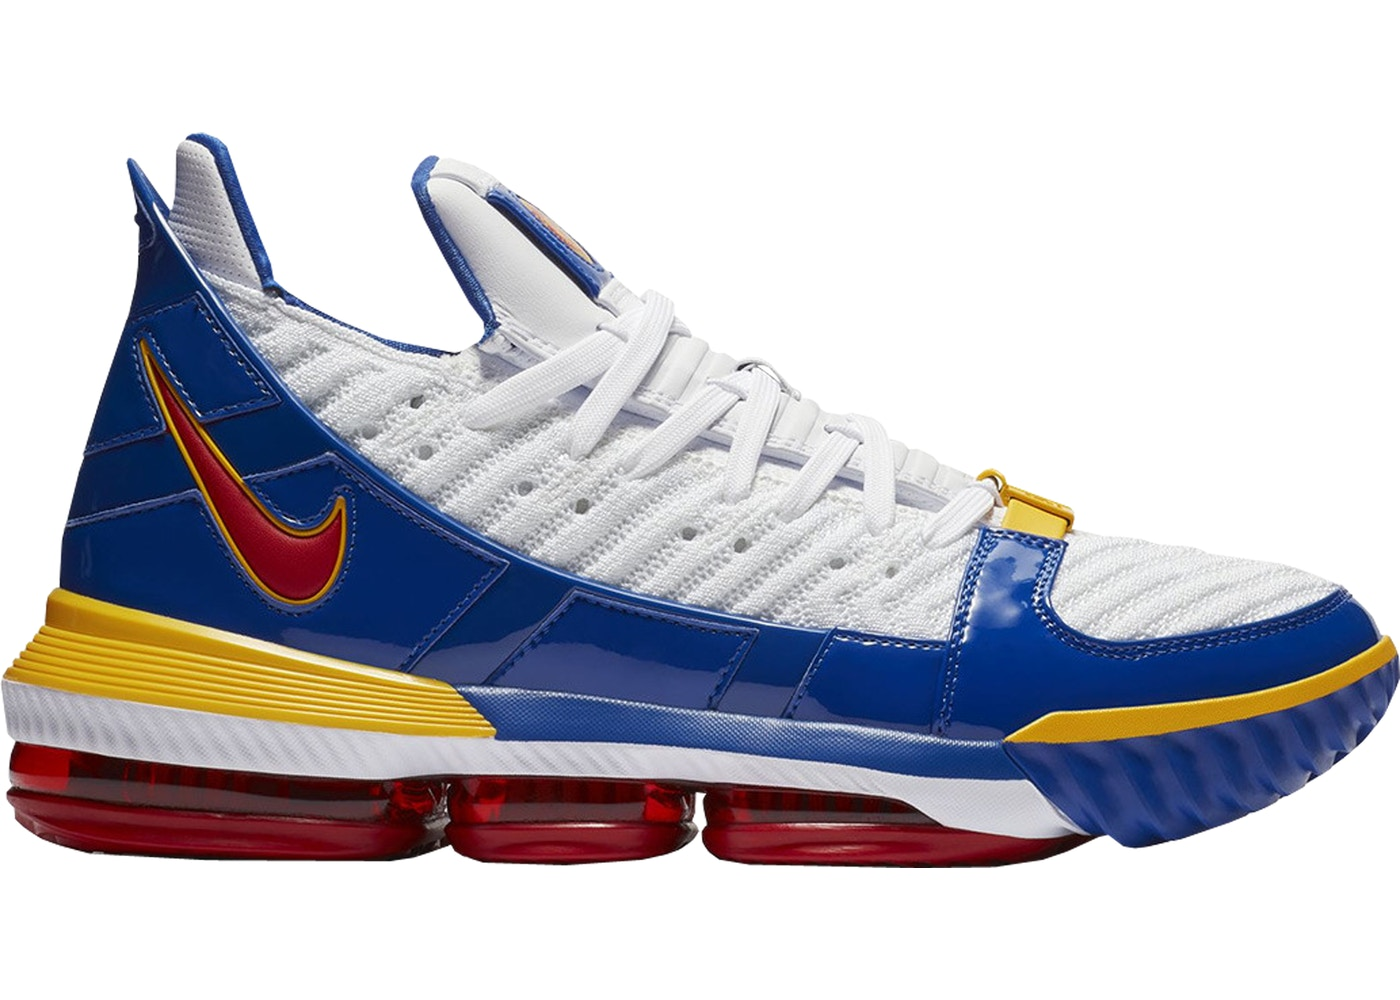 hot sale online 5861a ace8d LeBron 16 Superman SuperBron